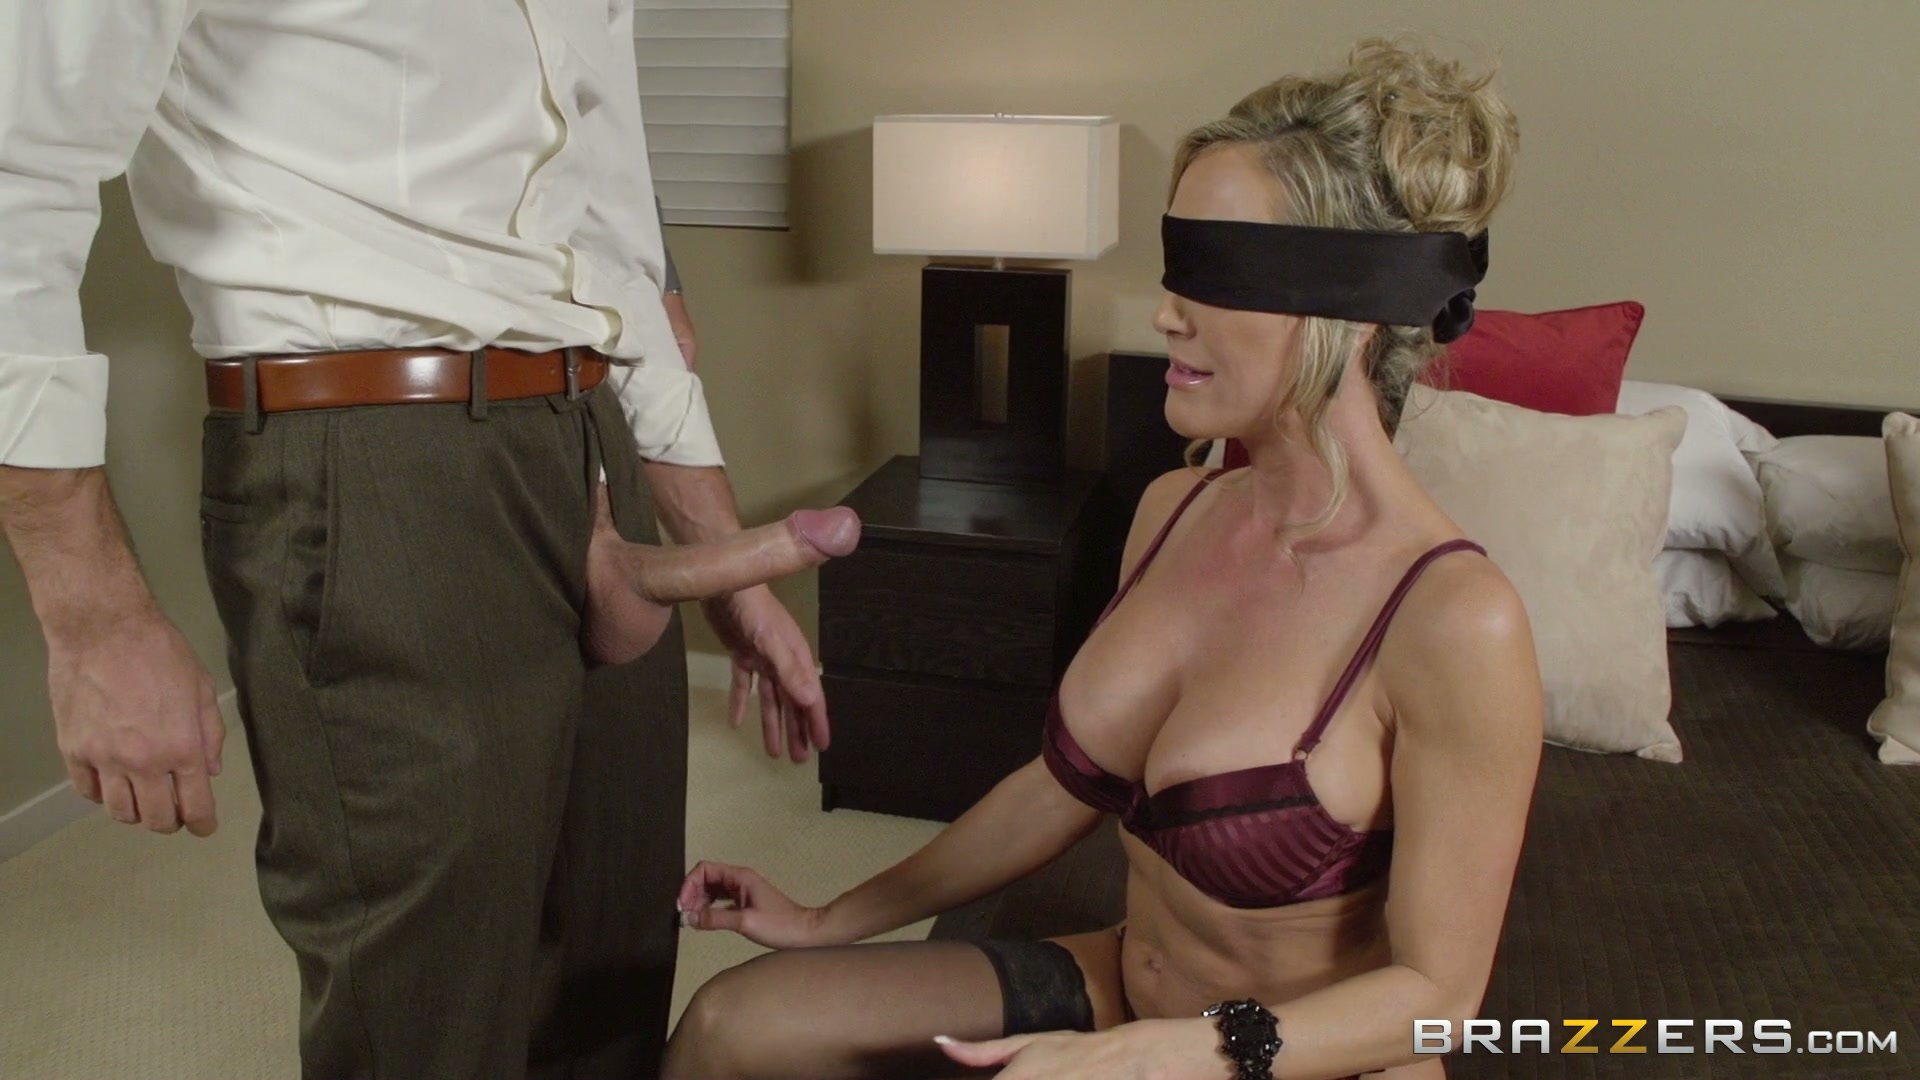 Blindfolded Porn Videos 96